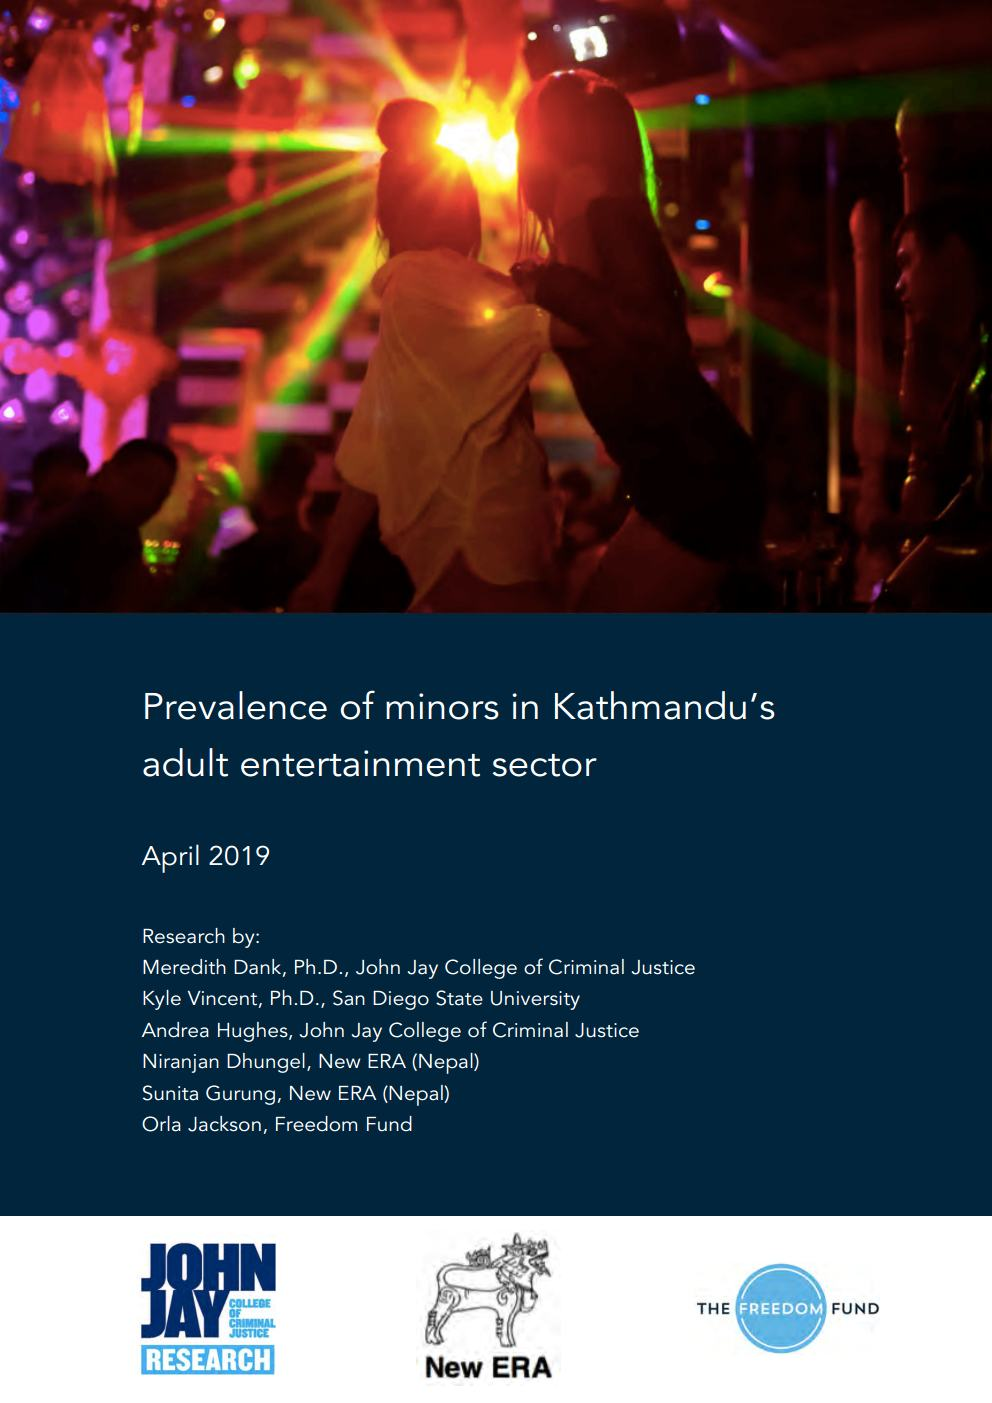 Prevalence of Minors in Kathmandu's Adult Entertainment Sector